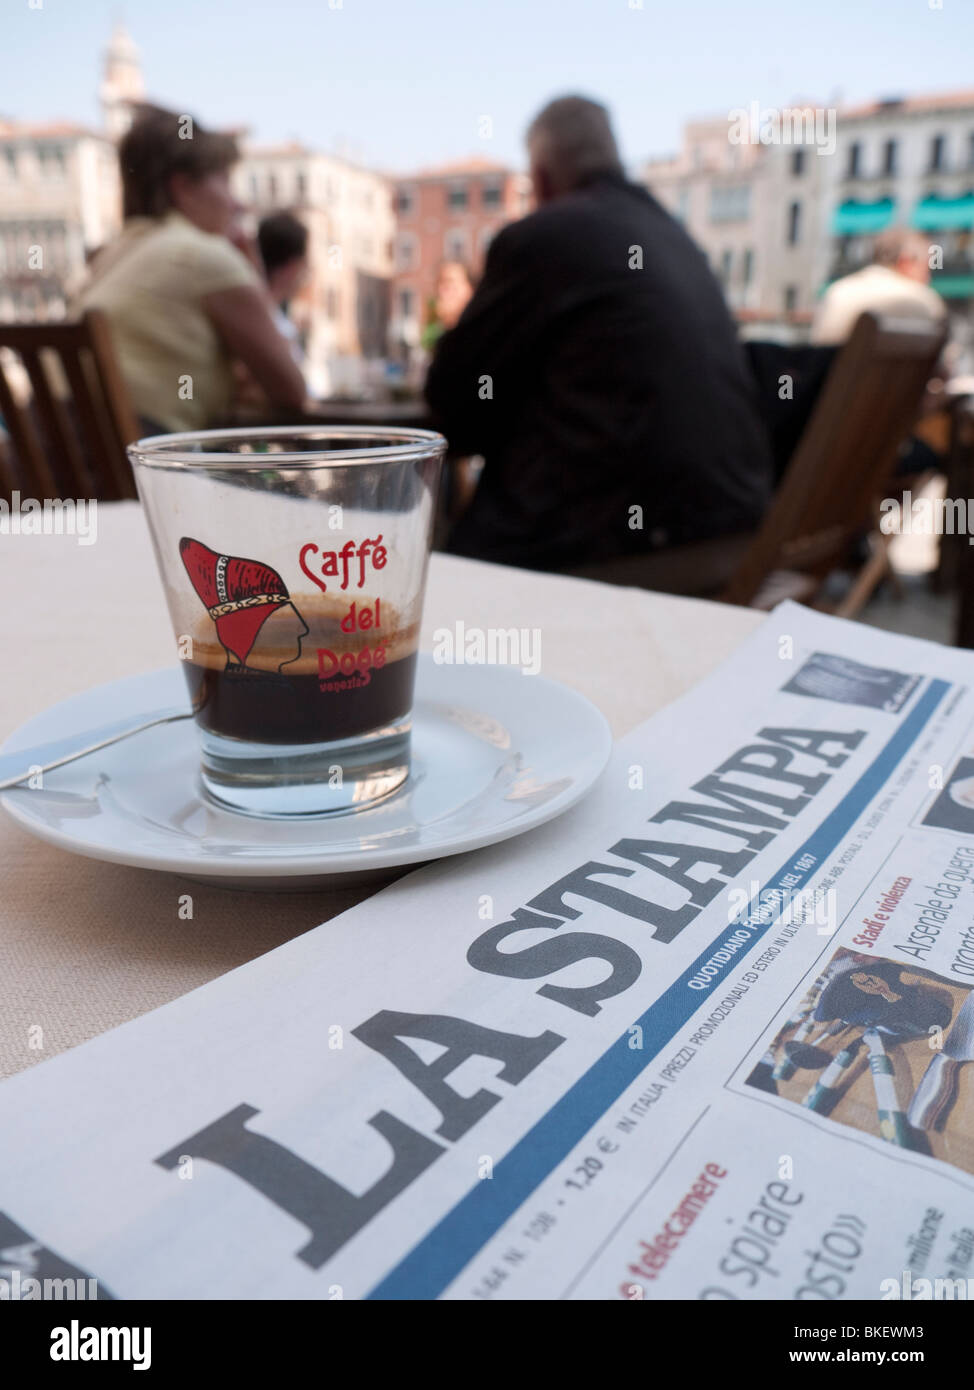 Detail of Italian newspaper and coffee at typical cafe in Venice Italy - Stock Image